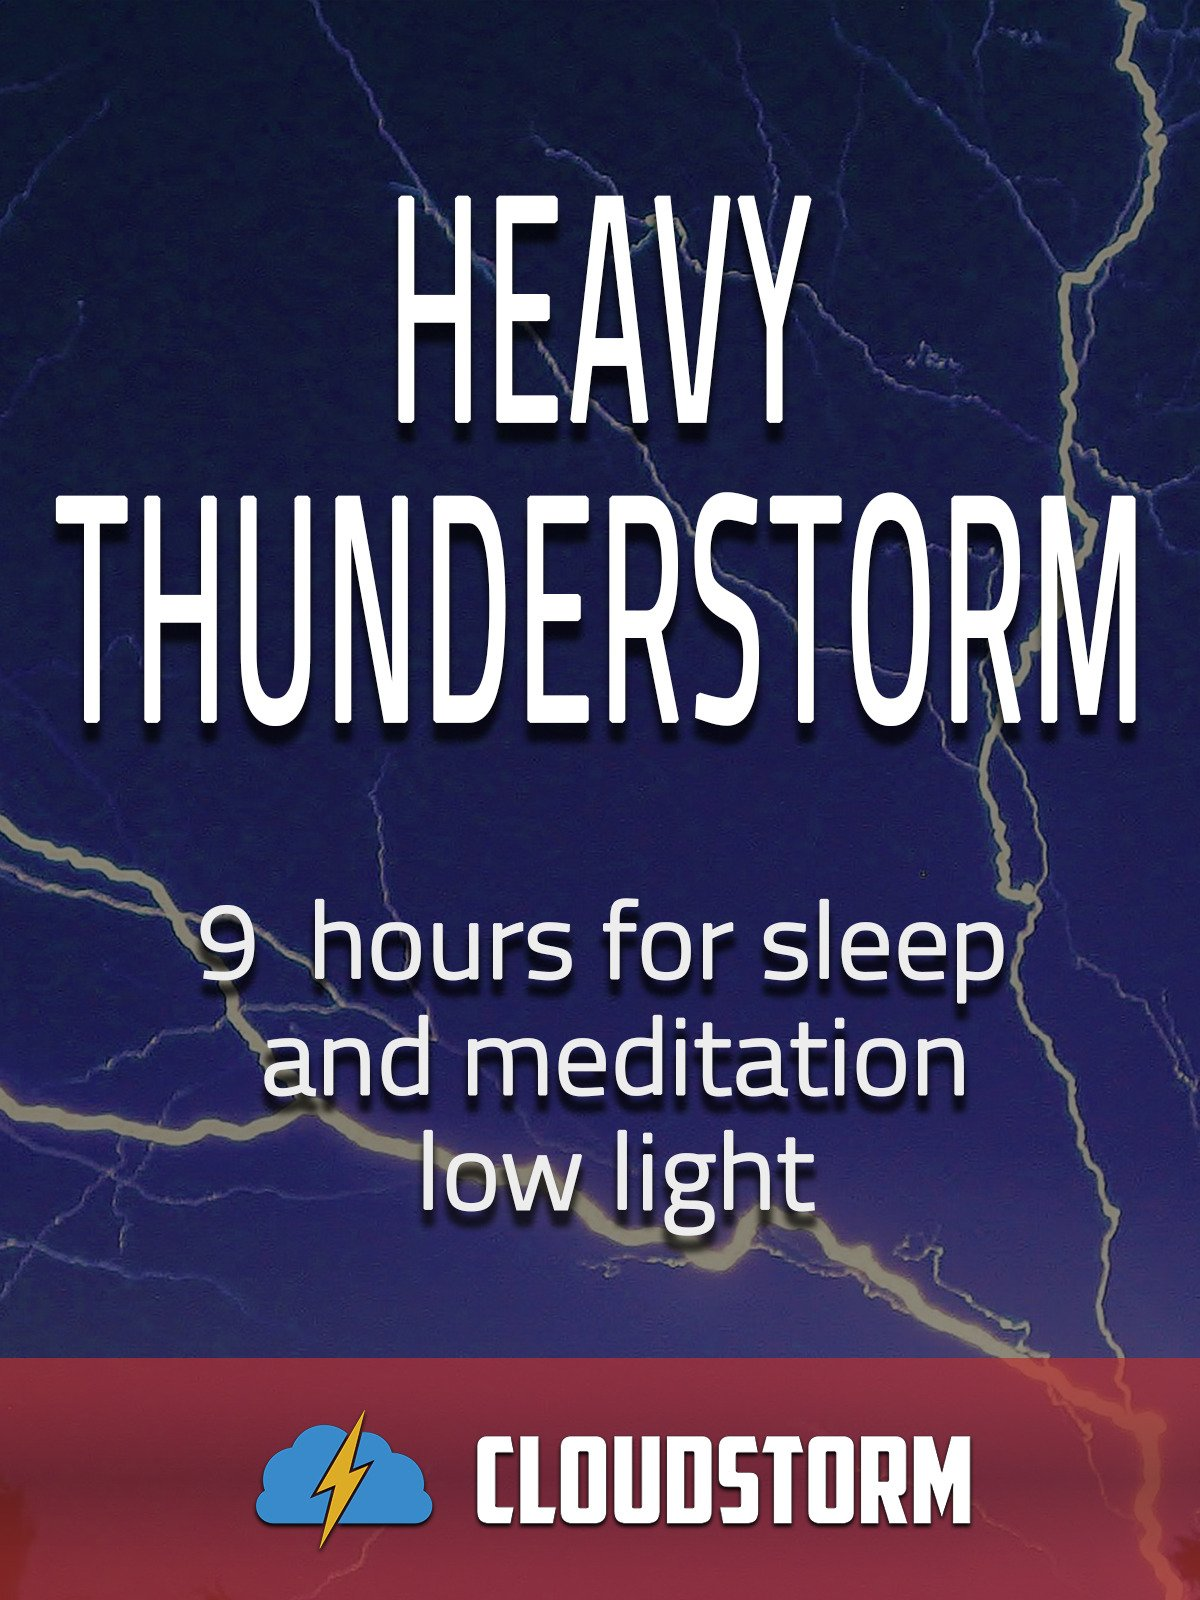 Heavy thunderstorm, 9 hours for Sleep and Meditation, low light